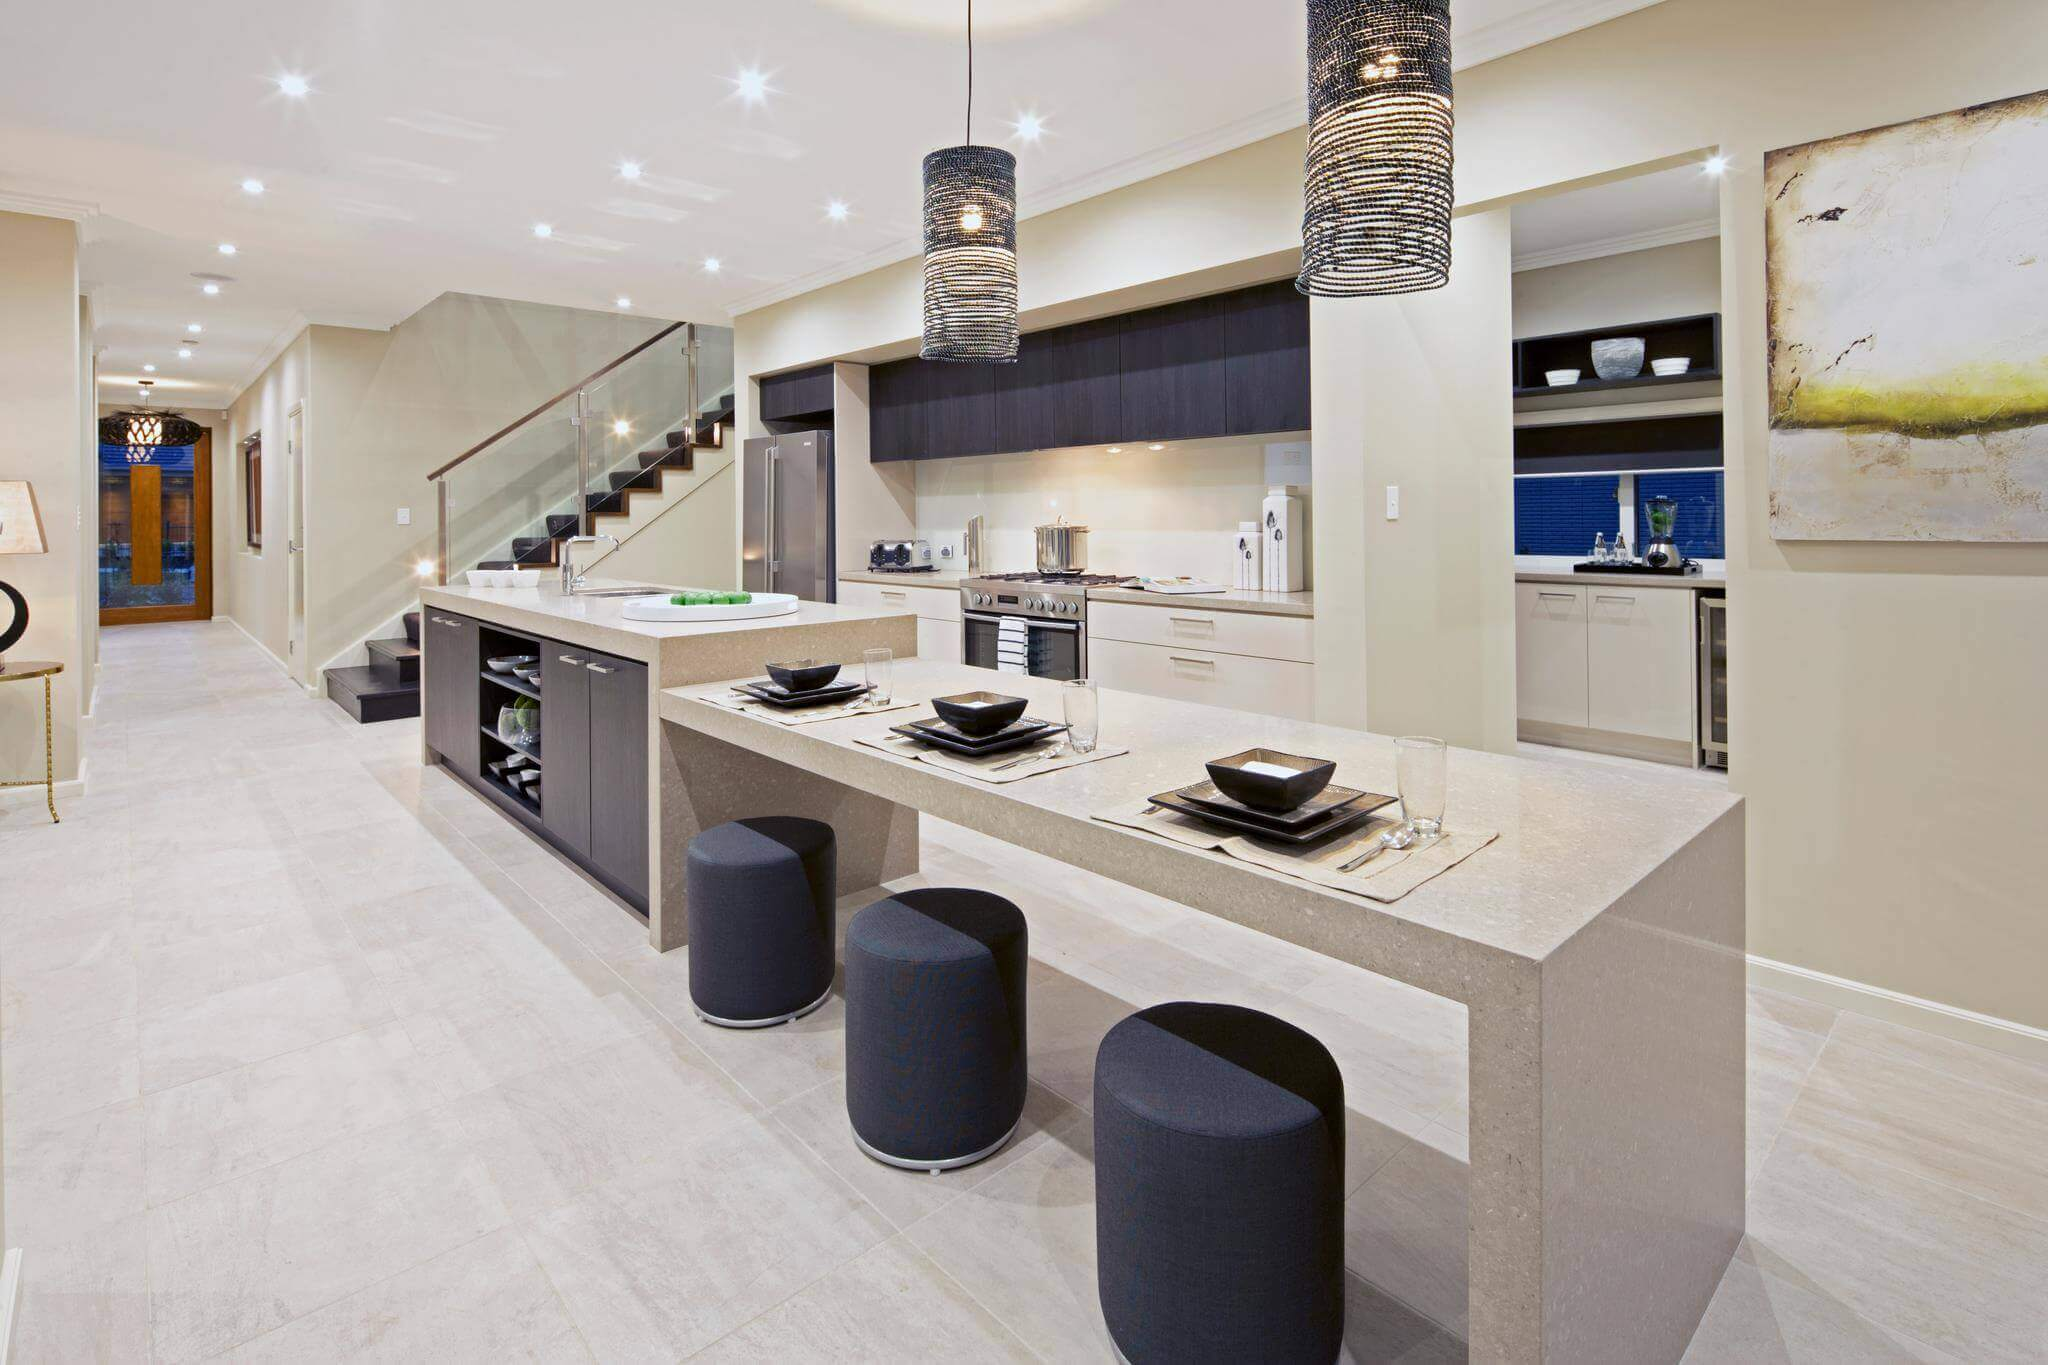 Efficient space usage as a design element is fundamental in modern kitchen designs. This modern kitchen with butlers pantry demonstrates how a space can retain its full functionality without detracting from the design focus